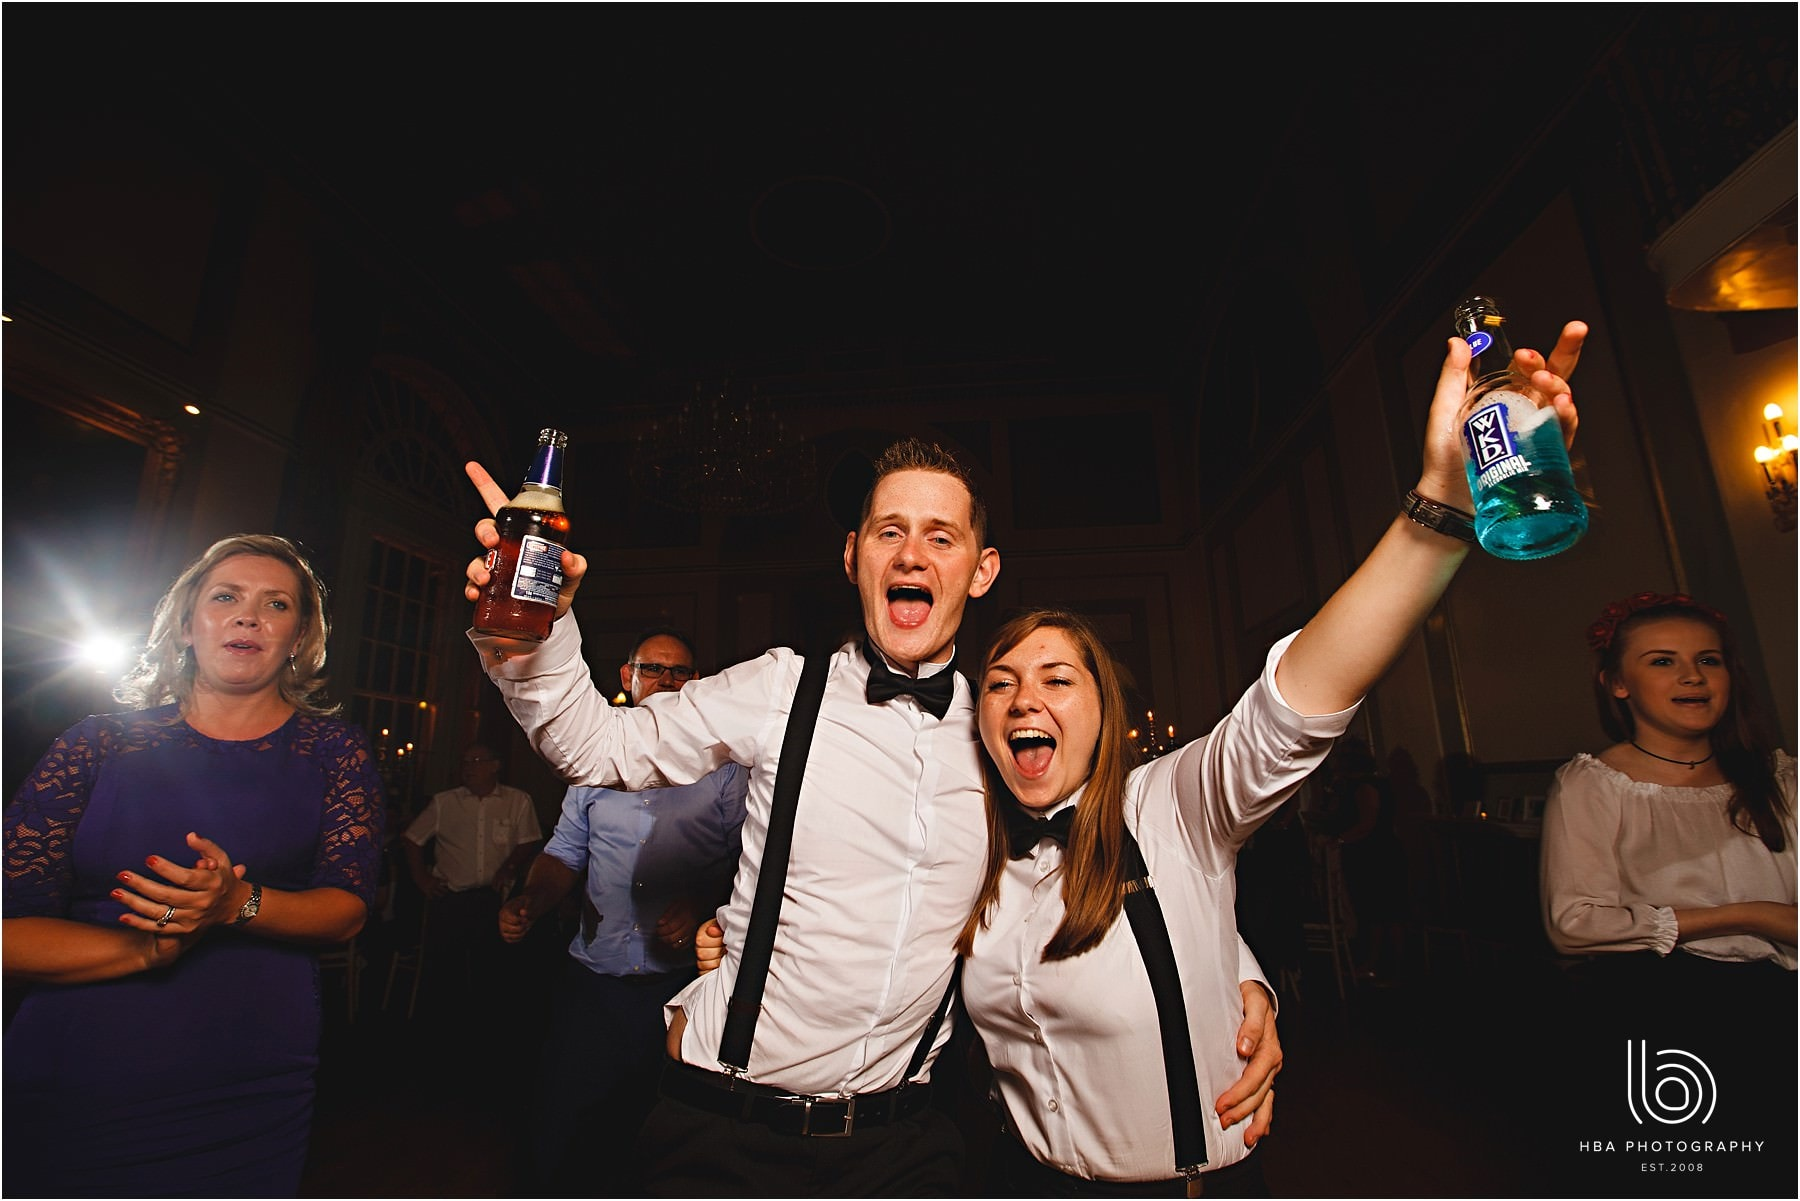 the groom and his best woman on the dance floor at the wedding